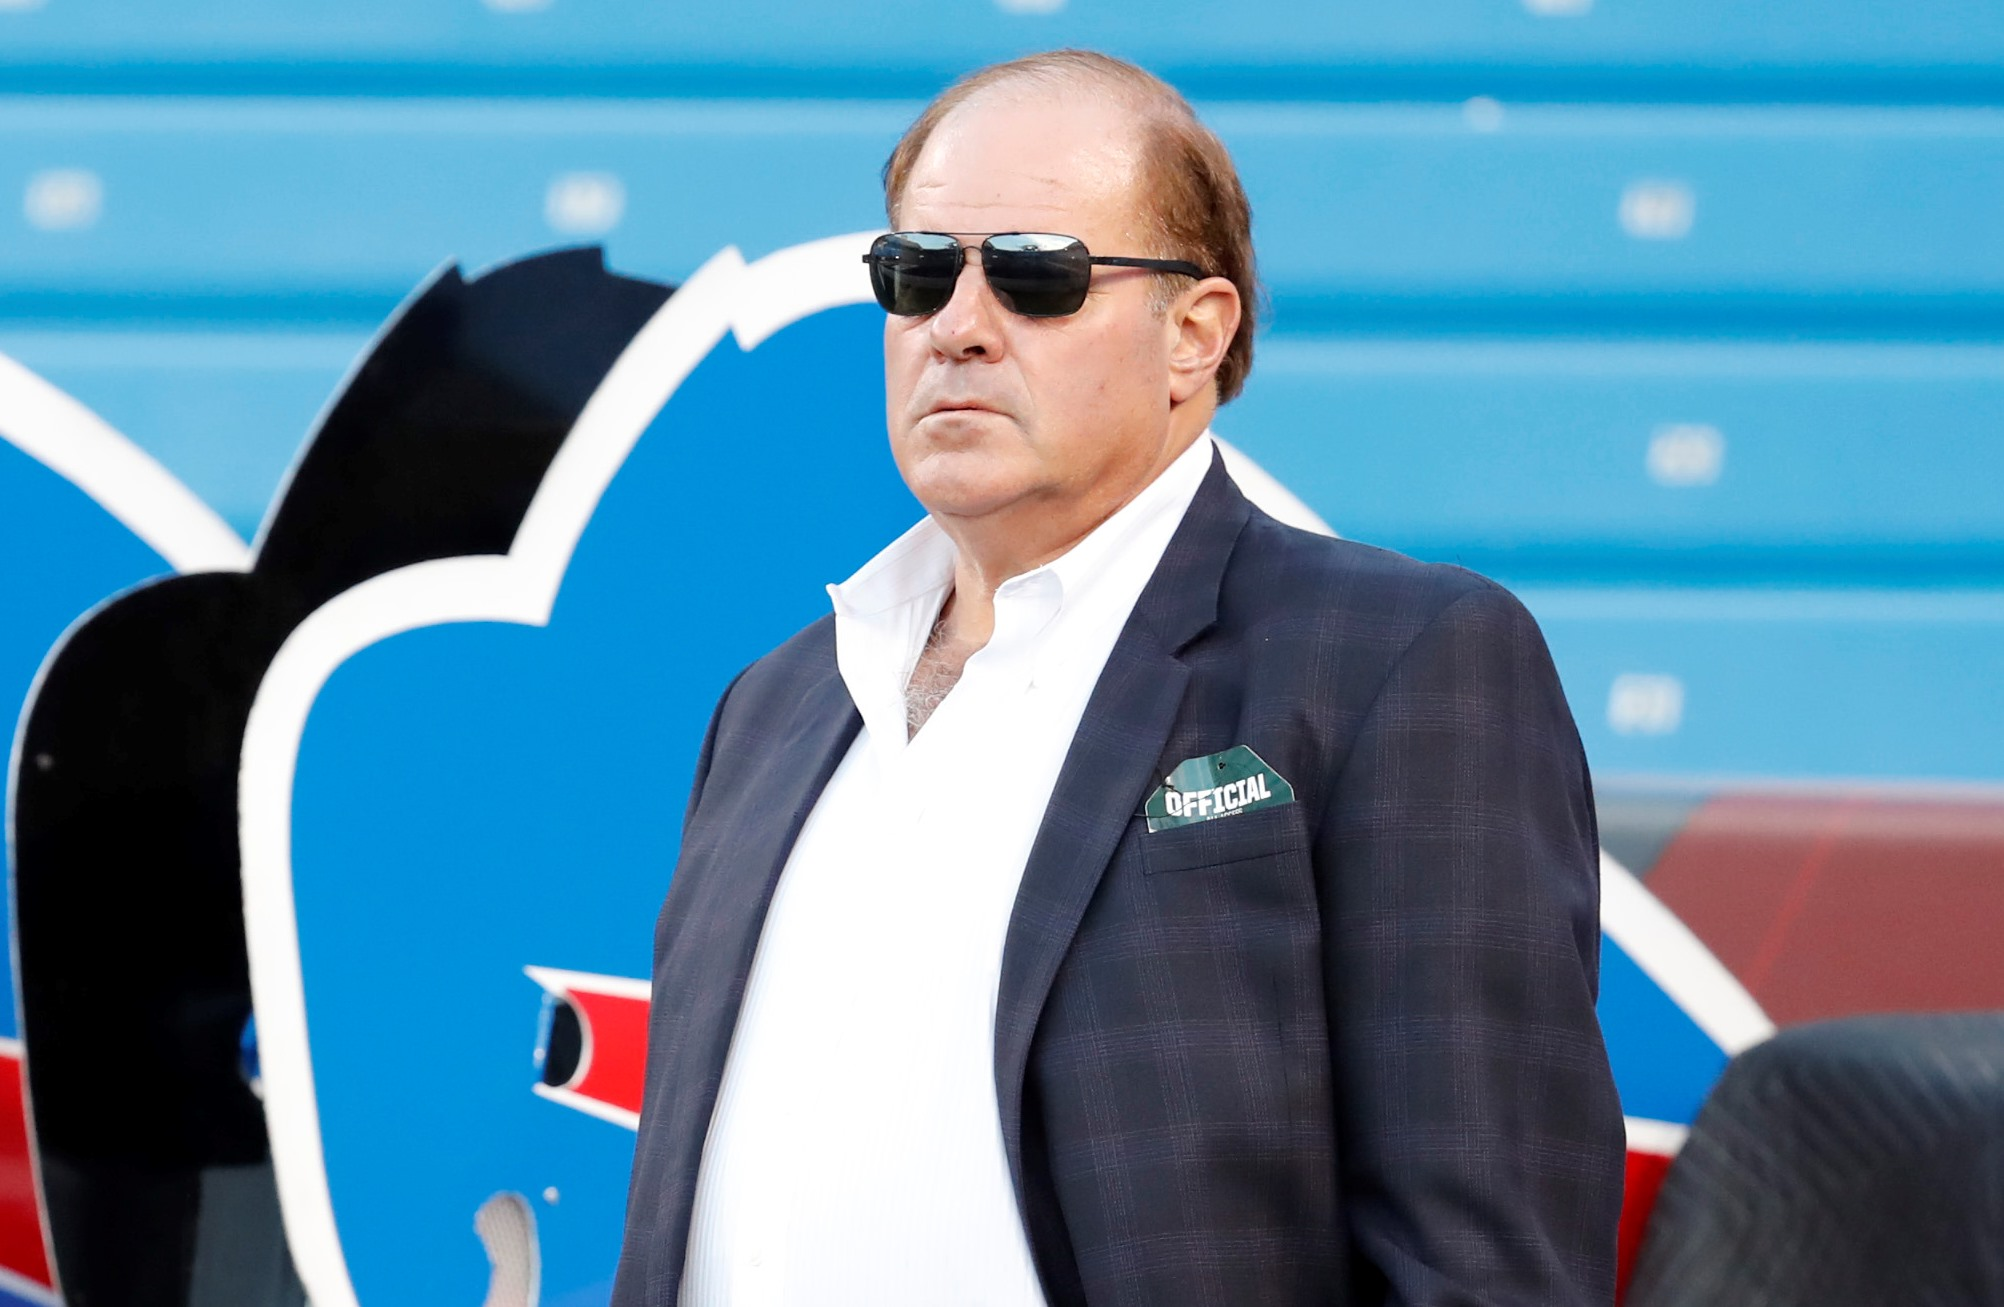 ESPN's Chris Berman watches pregame prior to the Buffalo Bills and New York Jets at New Era Field on Thursday, Sept. 15, 2016. (Harry Scull Jr./Buffalo News)